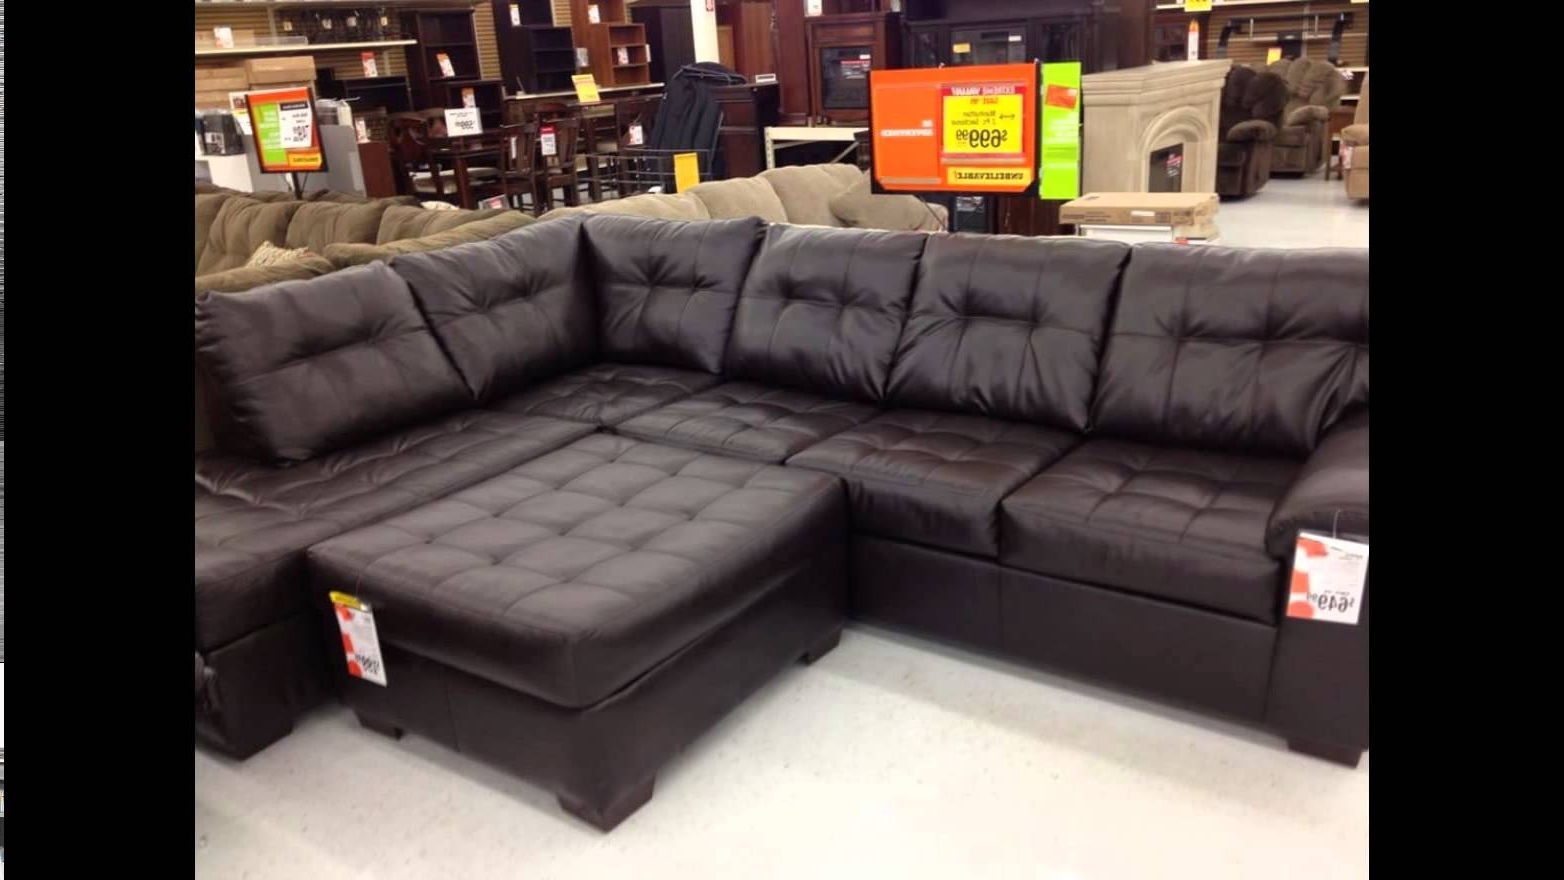 Sectional Sofas At Big Lots Inside Most Up To Date Big Lots Furniture  Big Lots Furniture Sale – Youtube (View 6 of 15)